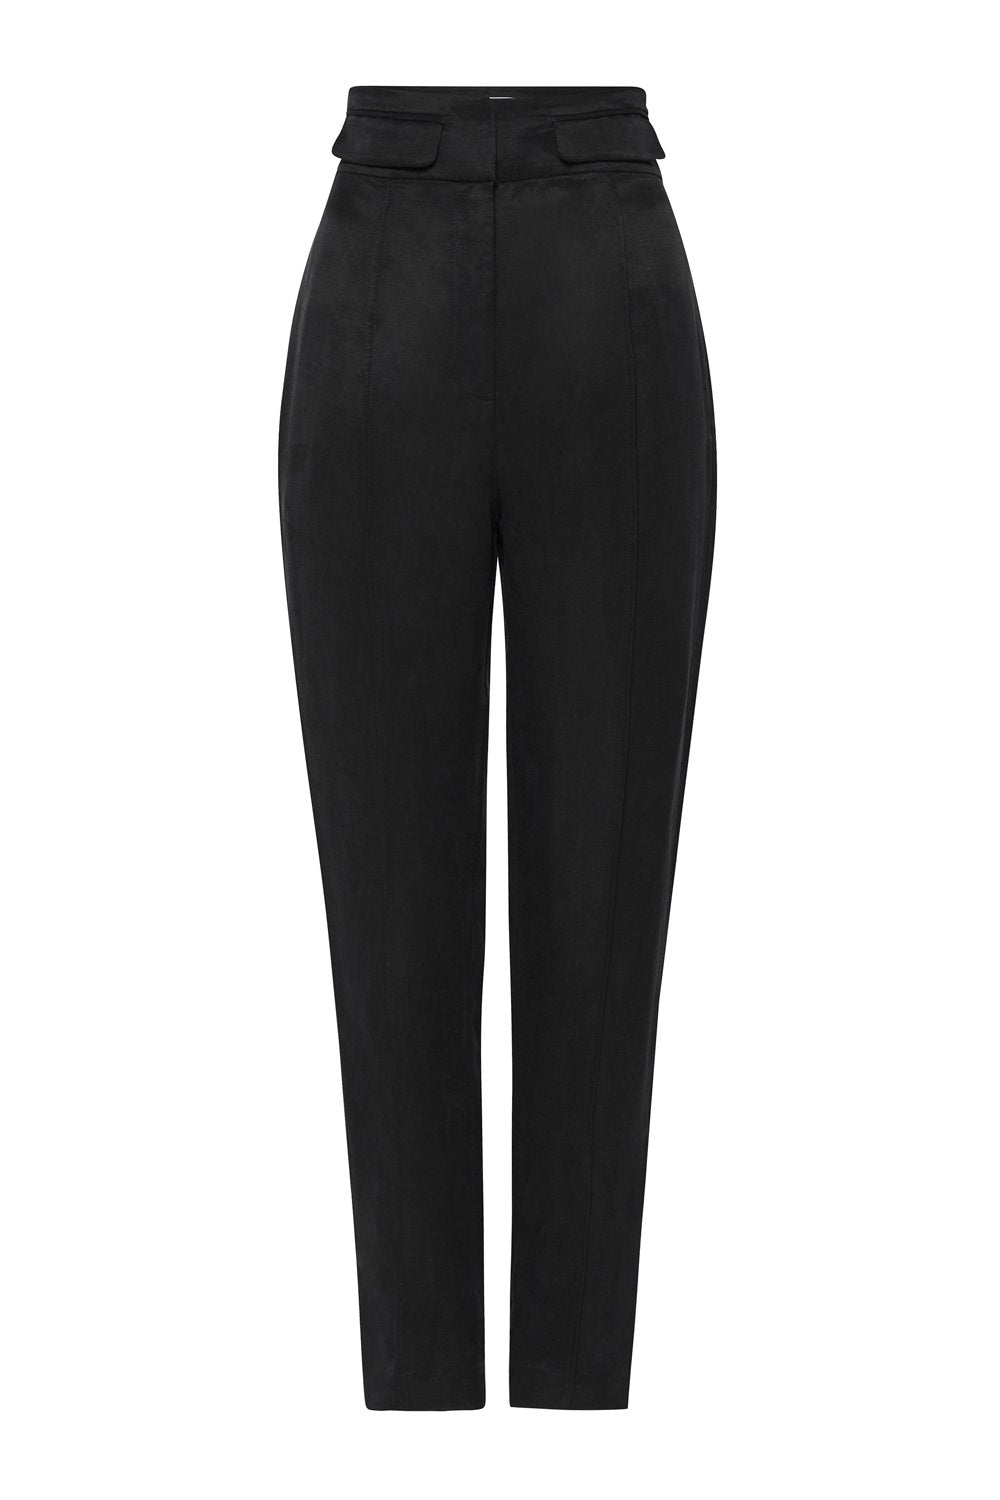 SIR the label INEZ PANELLED PANT BLACK